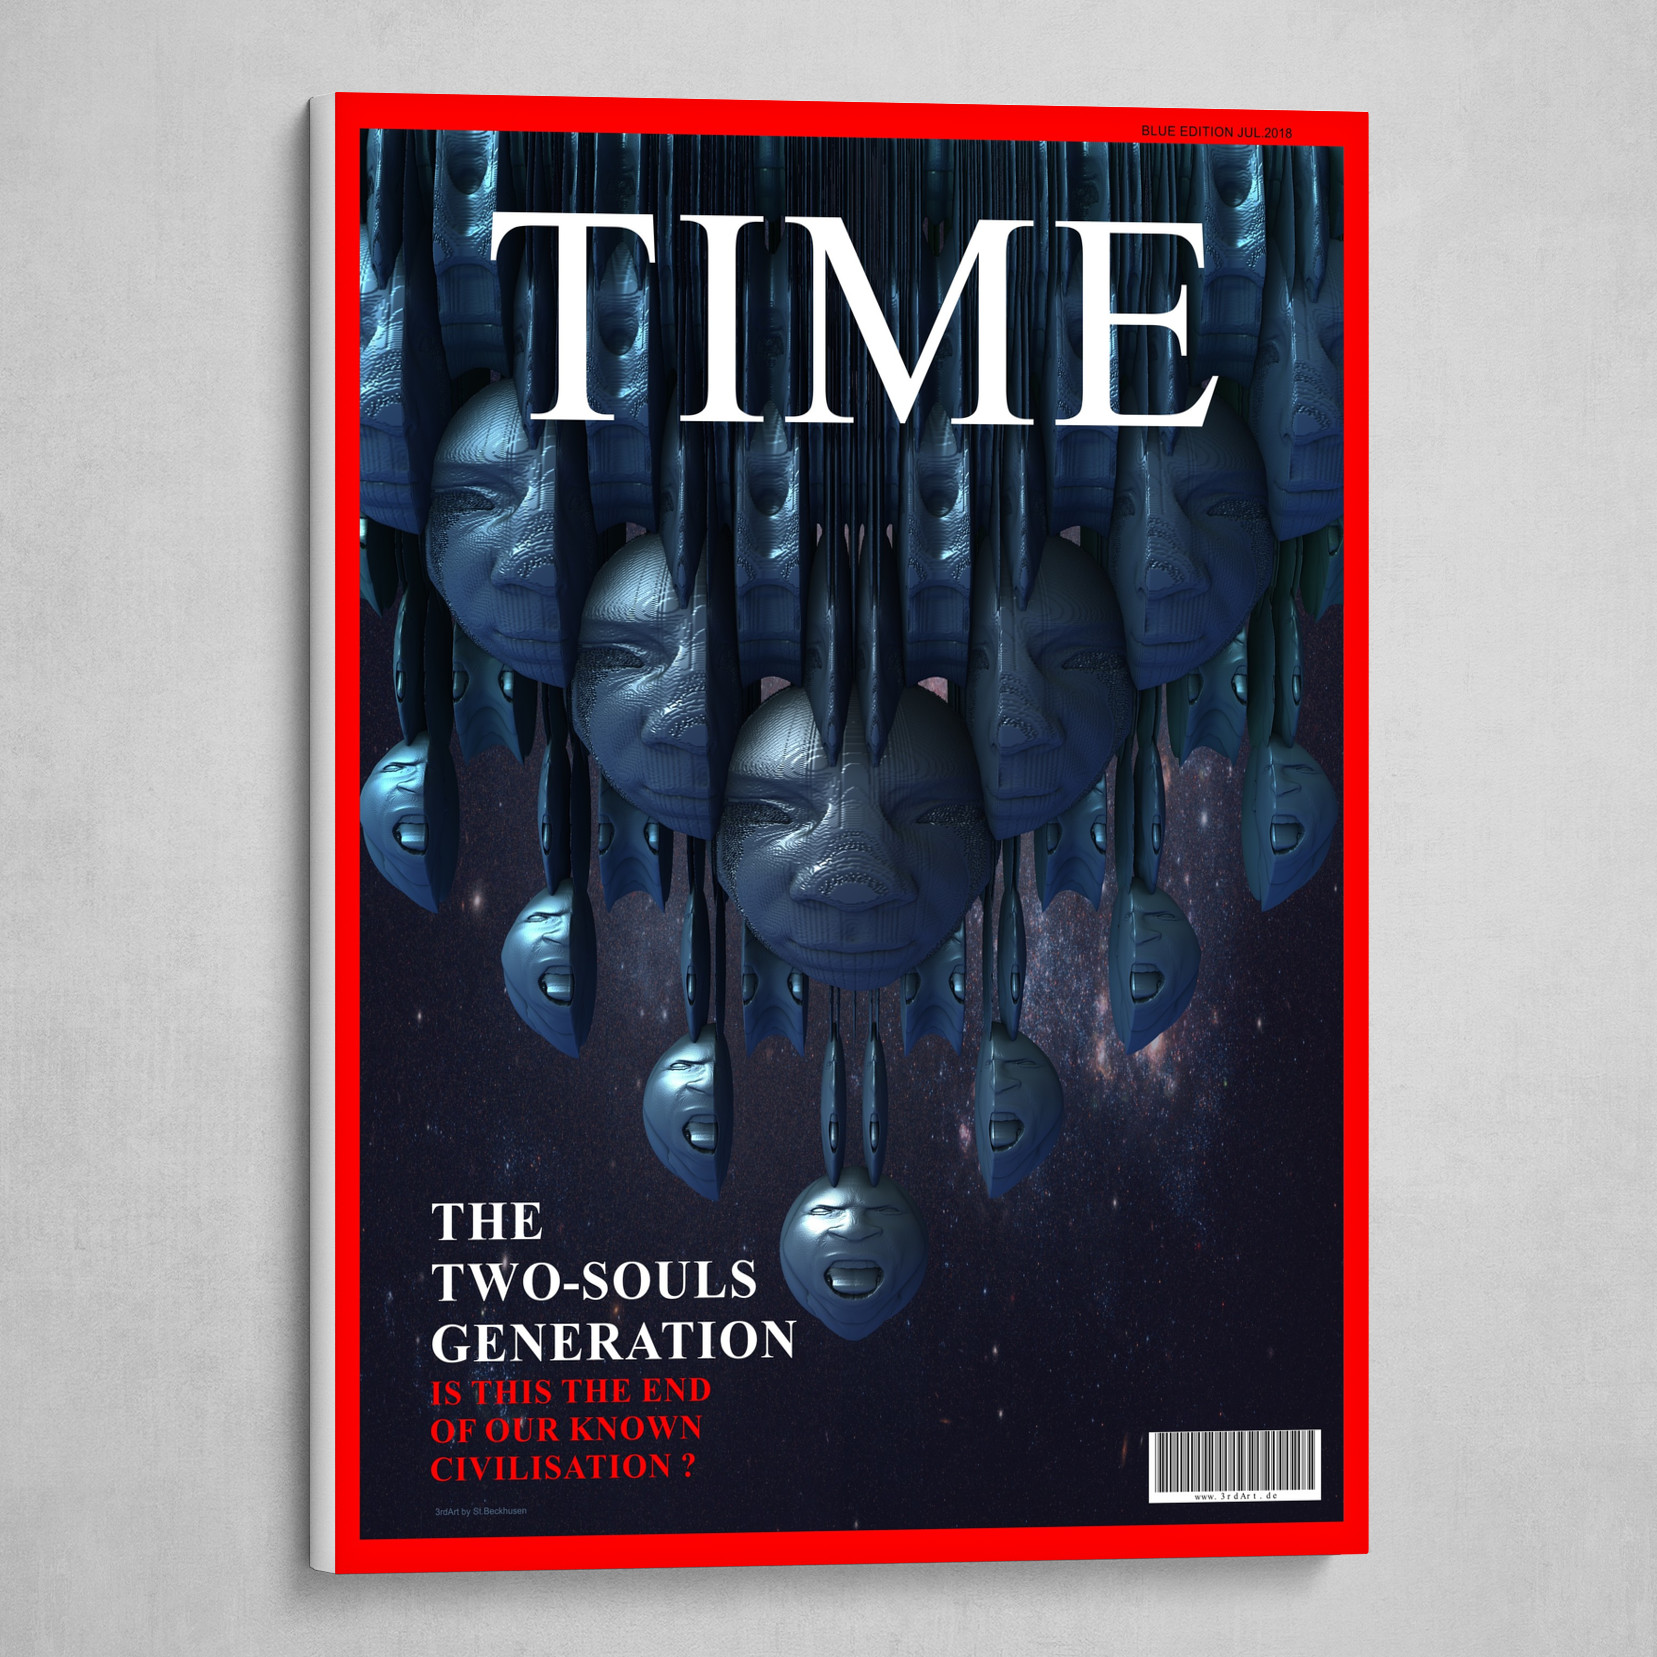 Time - The Two-Souls Generation (Blue Edition)